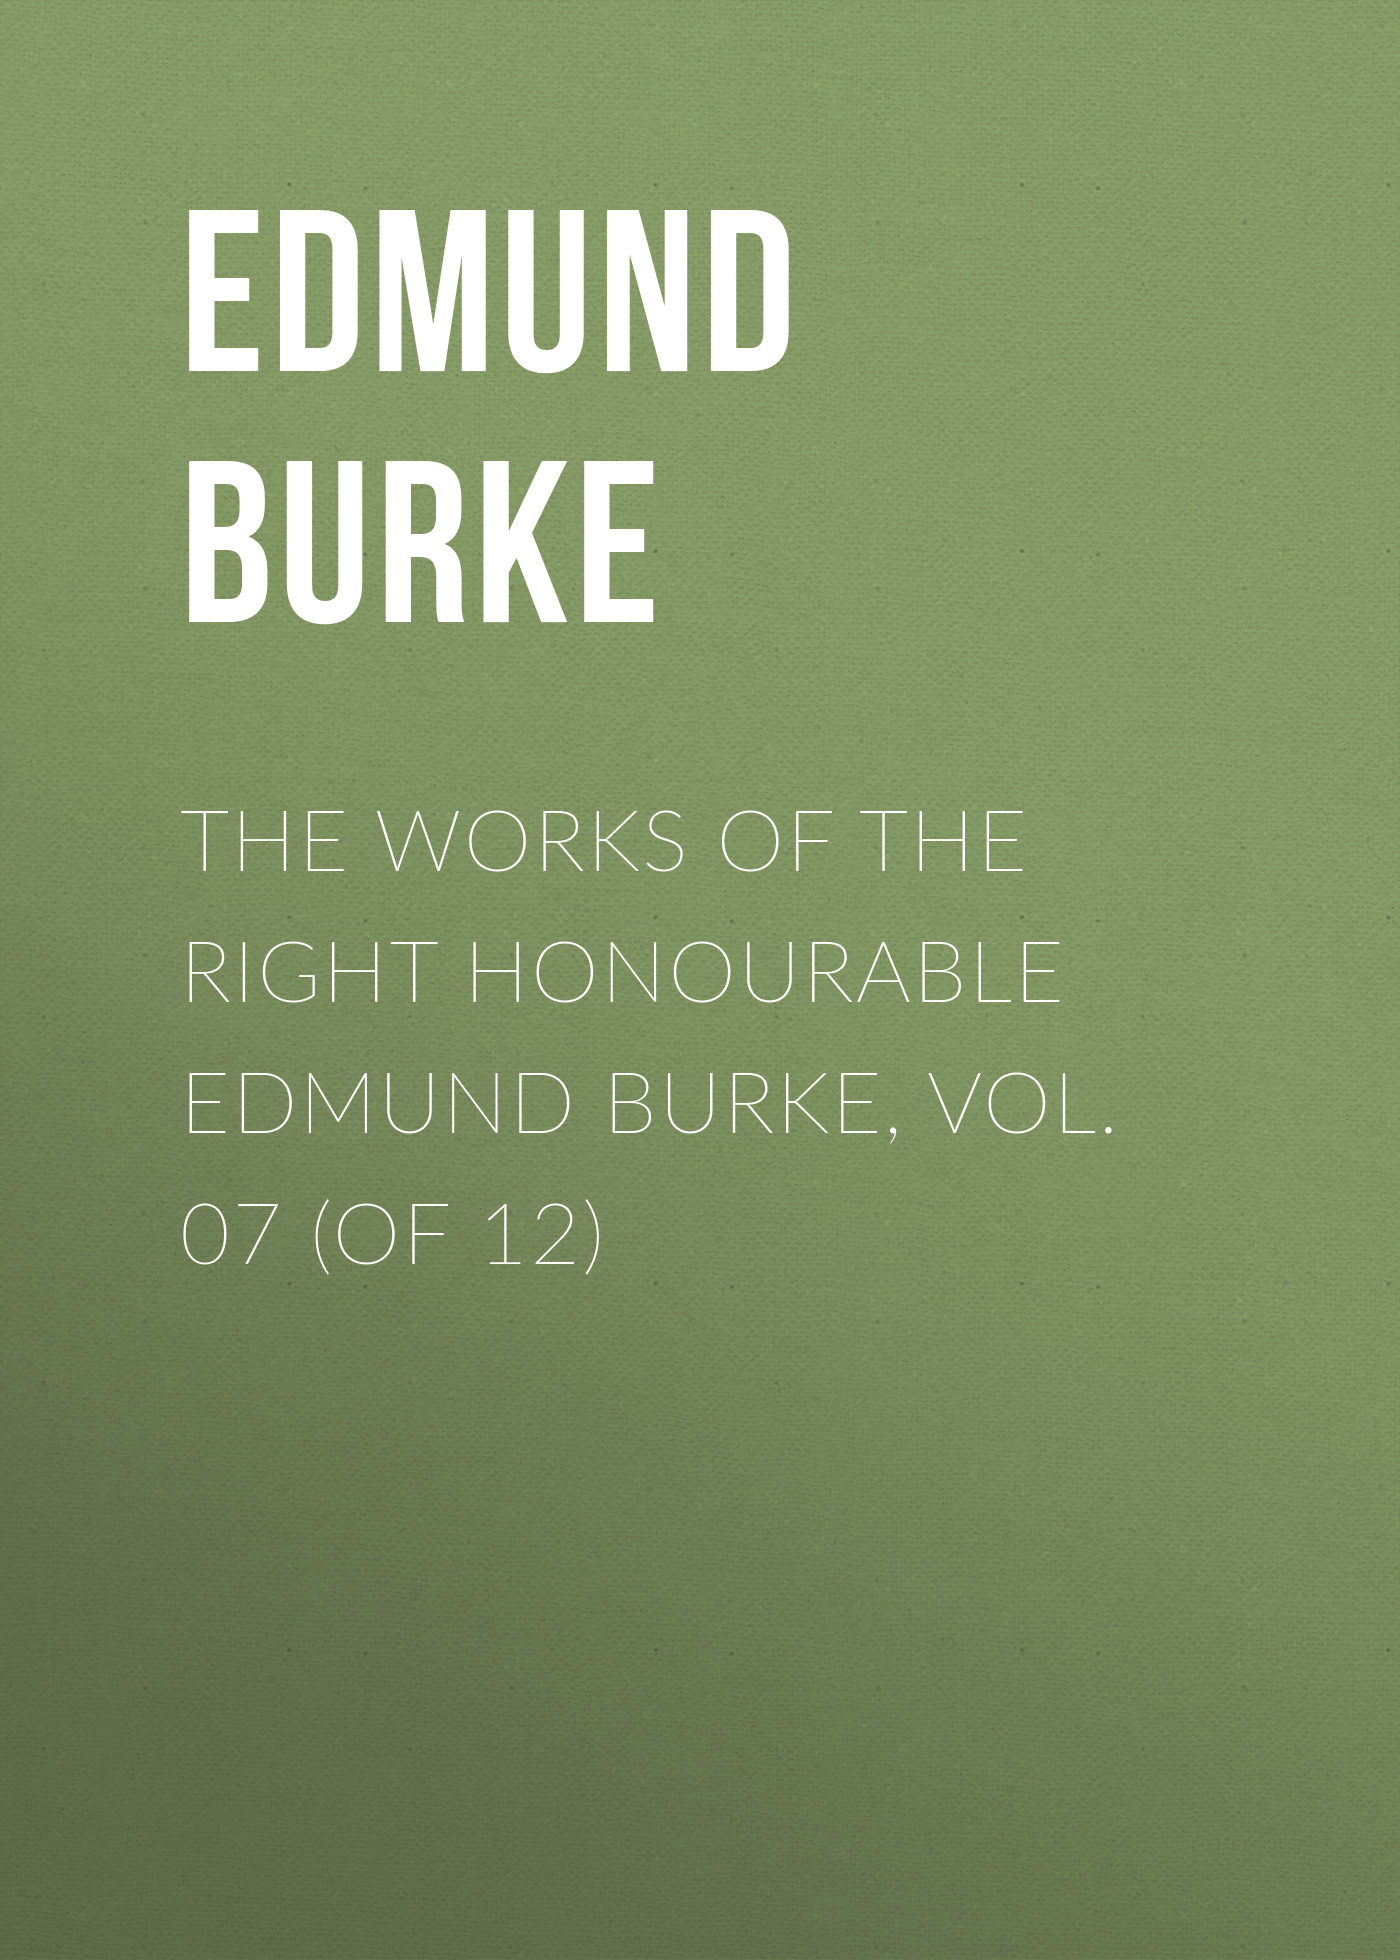 Edmund Burke The Works of the Right Honourable Edmund Burke, Vol. 07 (of 12) burke edmund the speeches of the right honourable edmund burke on the impeachment of warren hastings